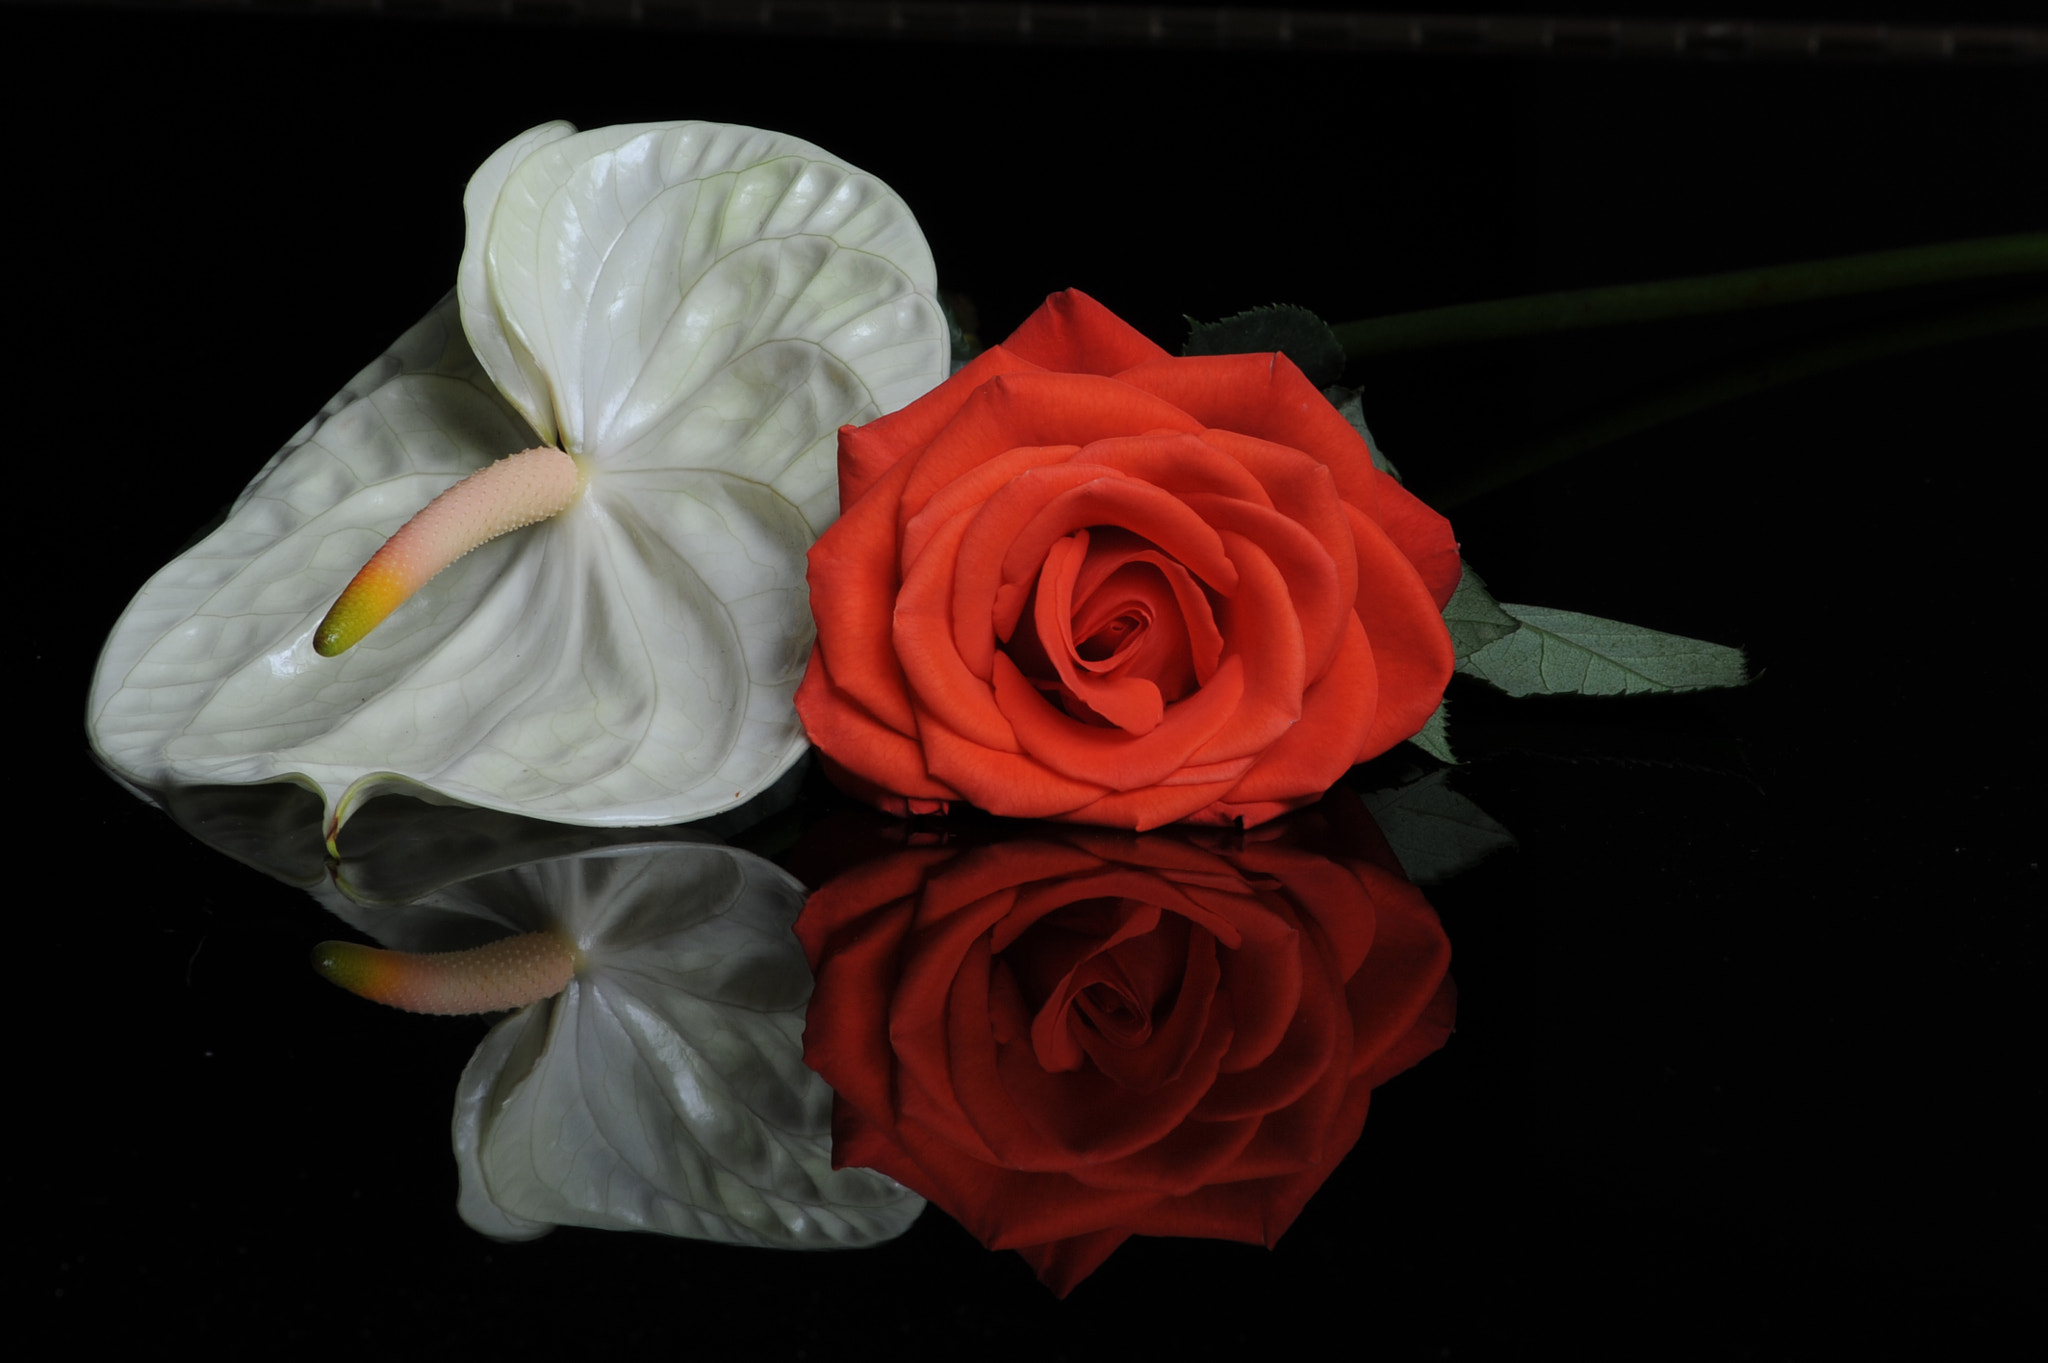 Photograph Anthurium and rose by Cristobal Garciaferro Rubio on 500px